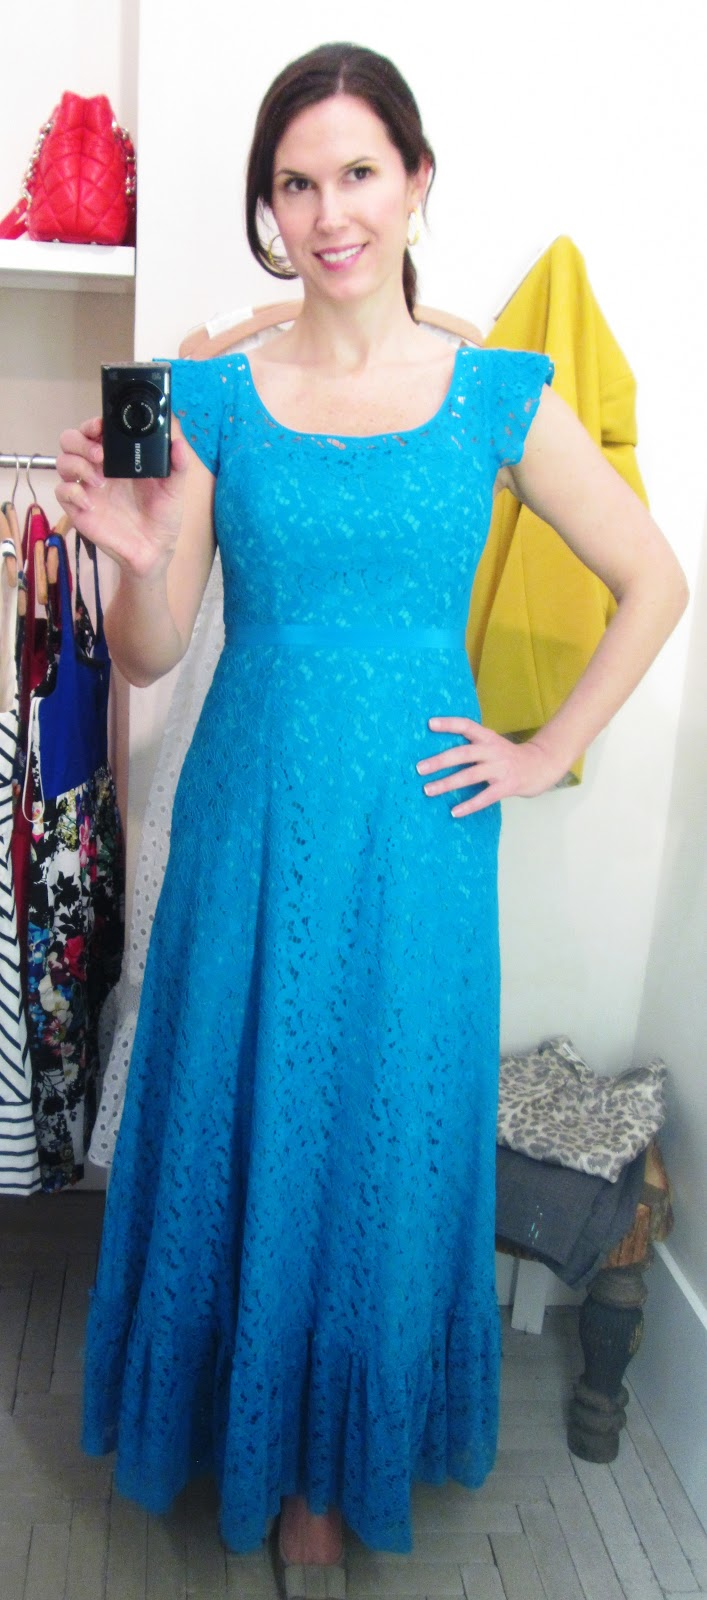 Colorful Corporate: Anthropologie fitting room reviews: So many ...